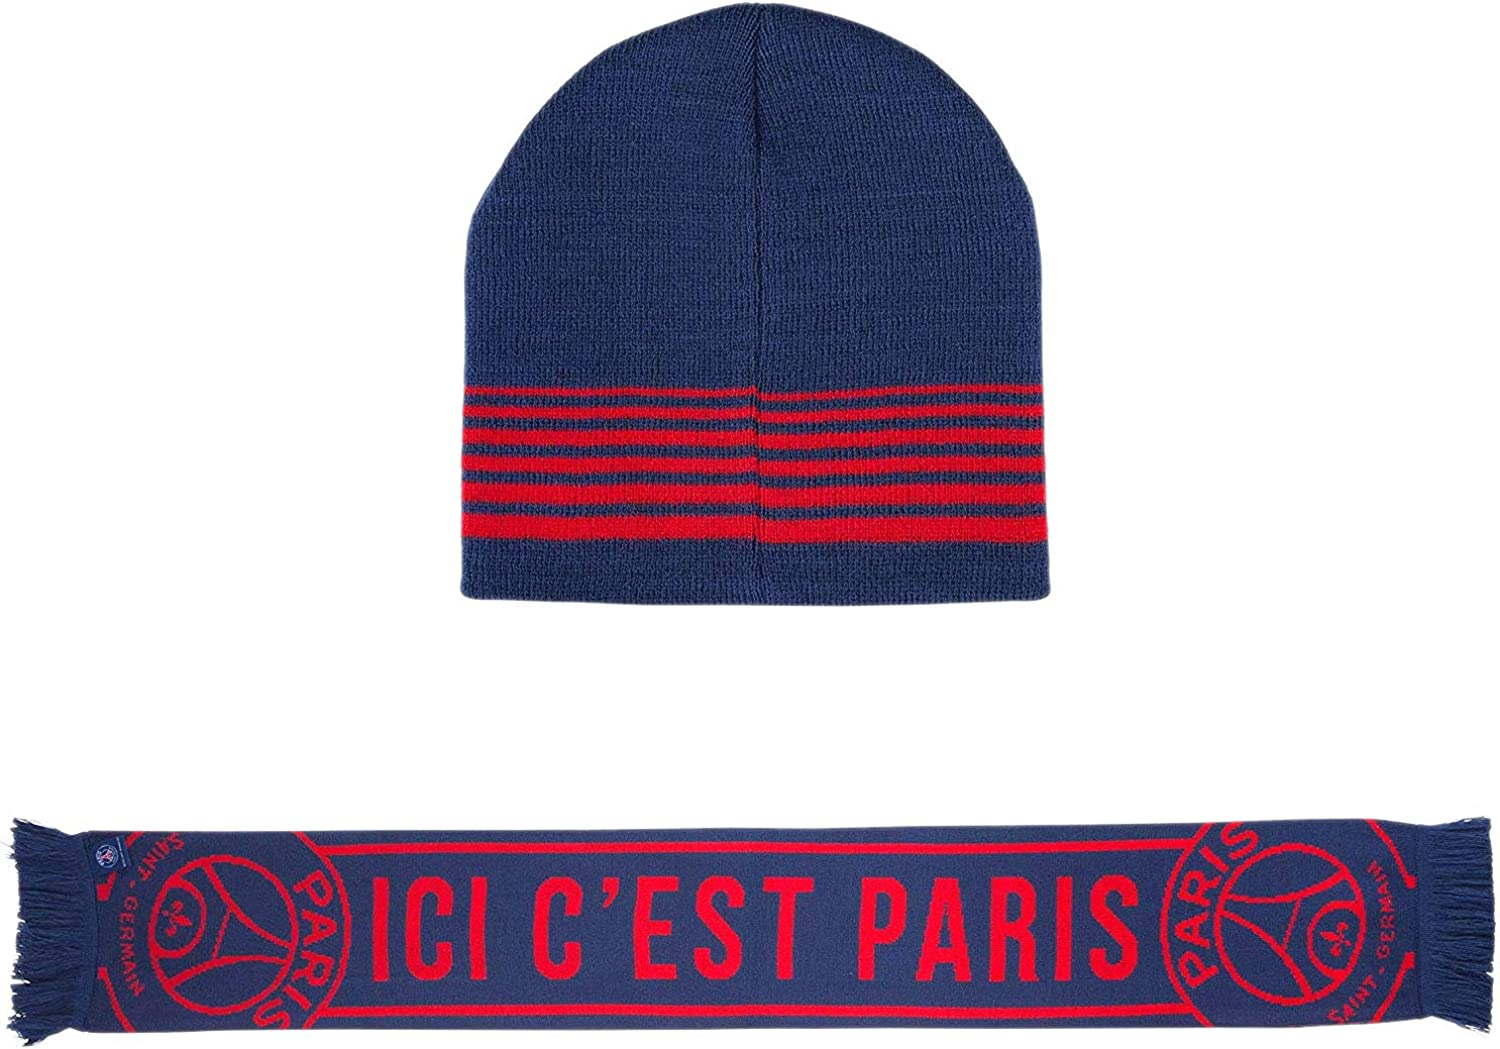 Psg Official Paris Saint Germain Beanie And Scarf Gift Box Blue At Amazon Men S Clothing Store